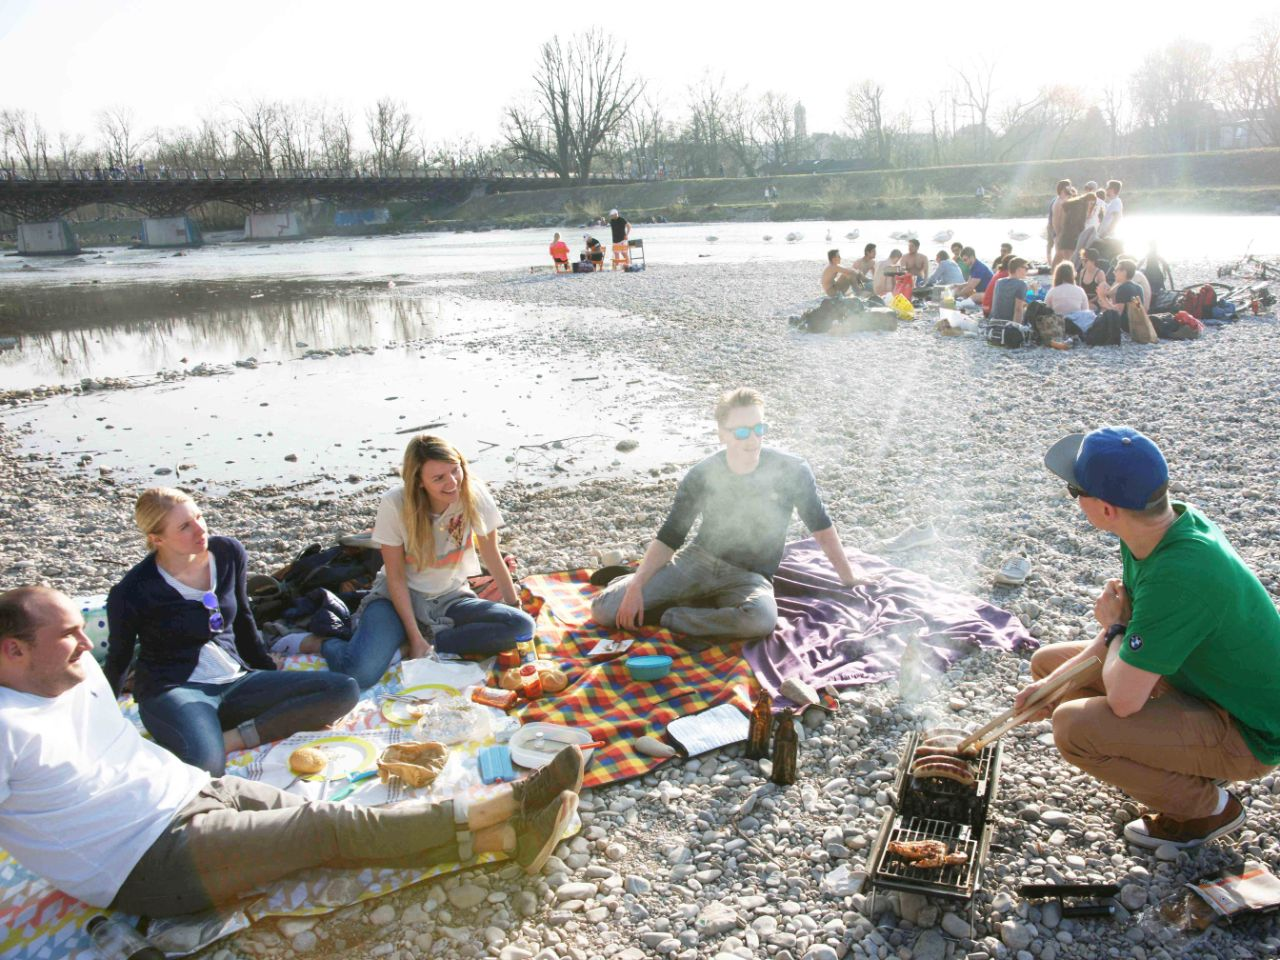 Isar picknick - cantinete